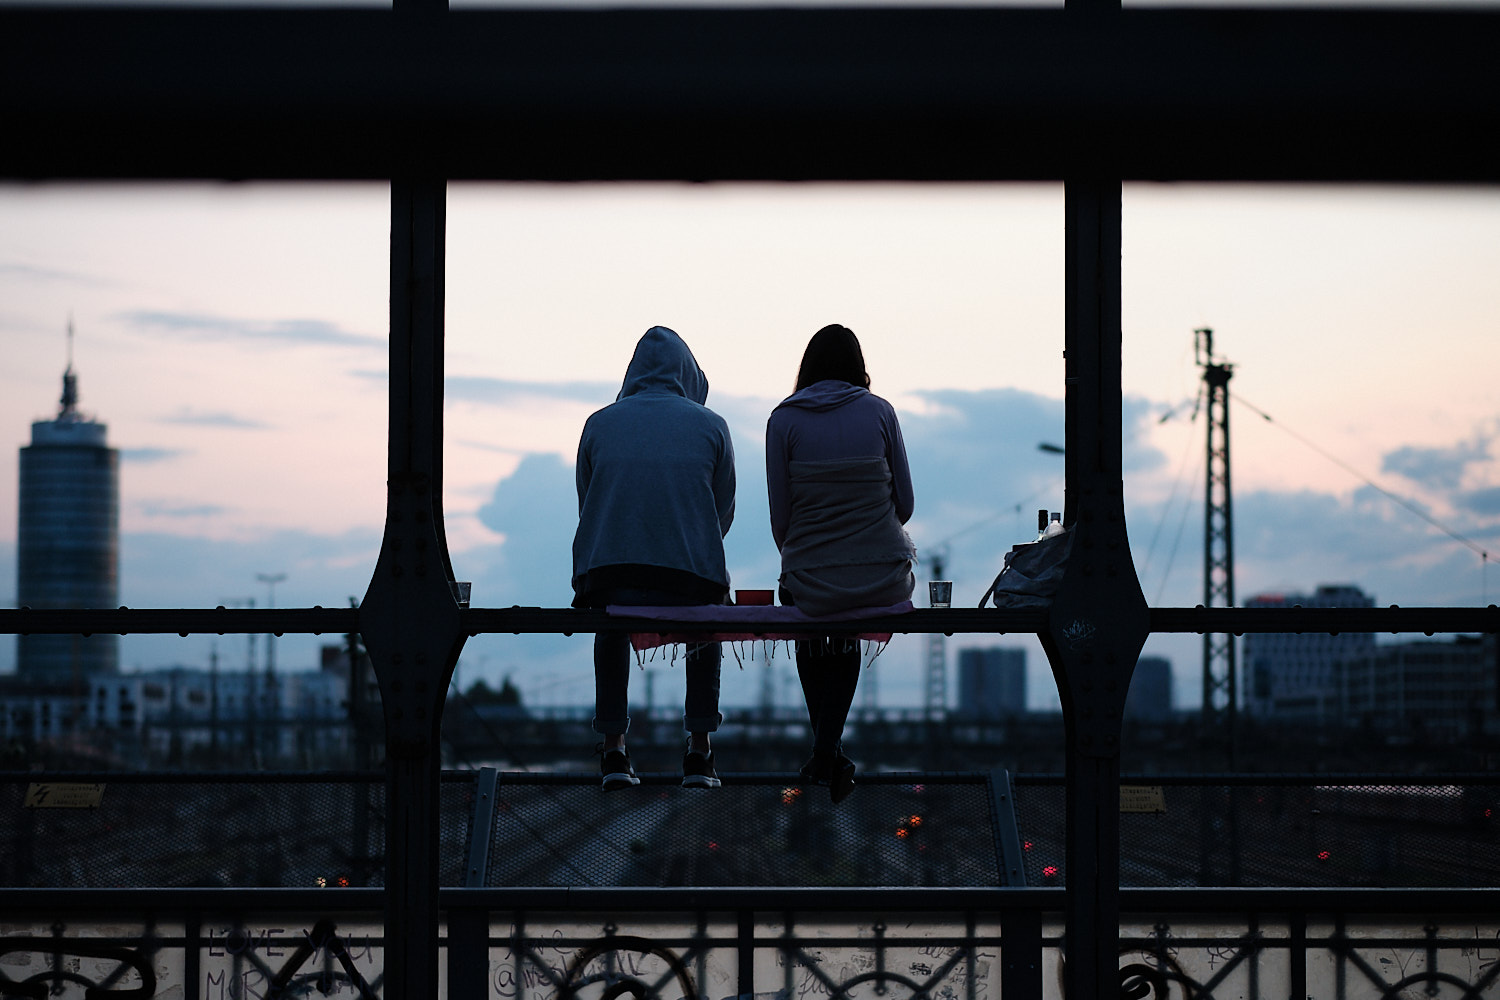 A couple chat perched over a beam at the Hackerbrücke bridge facing the west sky. In the background the sunset blue sky sets them as dark profiles.